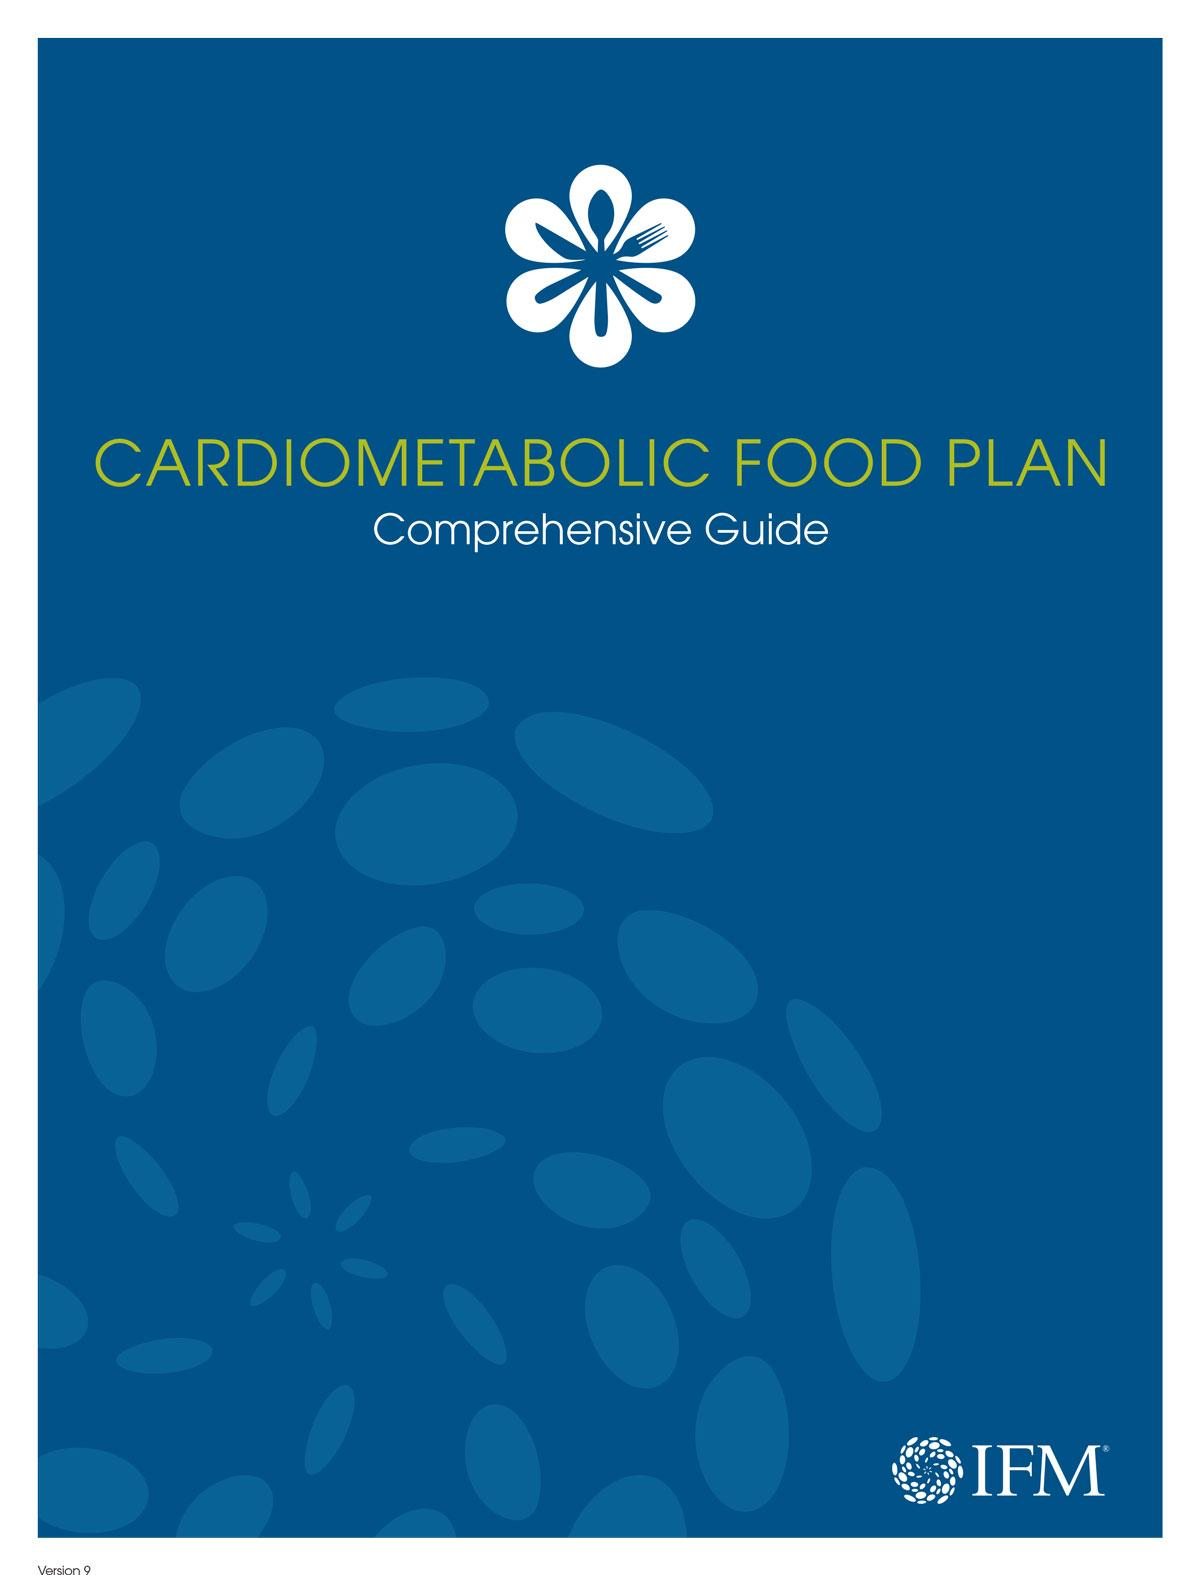 Cardiometabolic Food Plan Comprehensive Guide